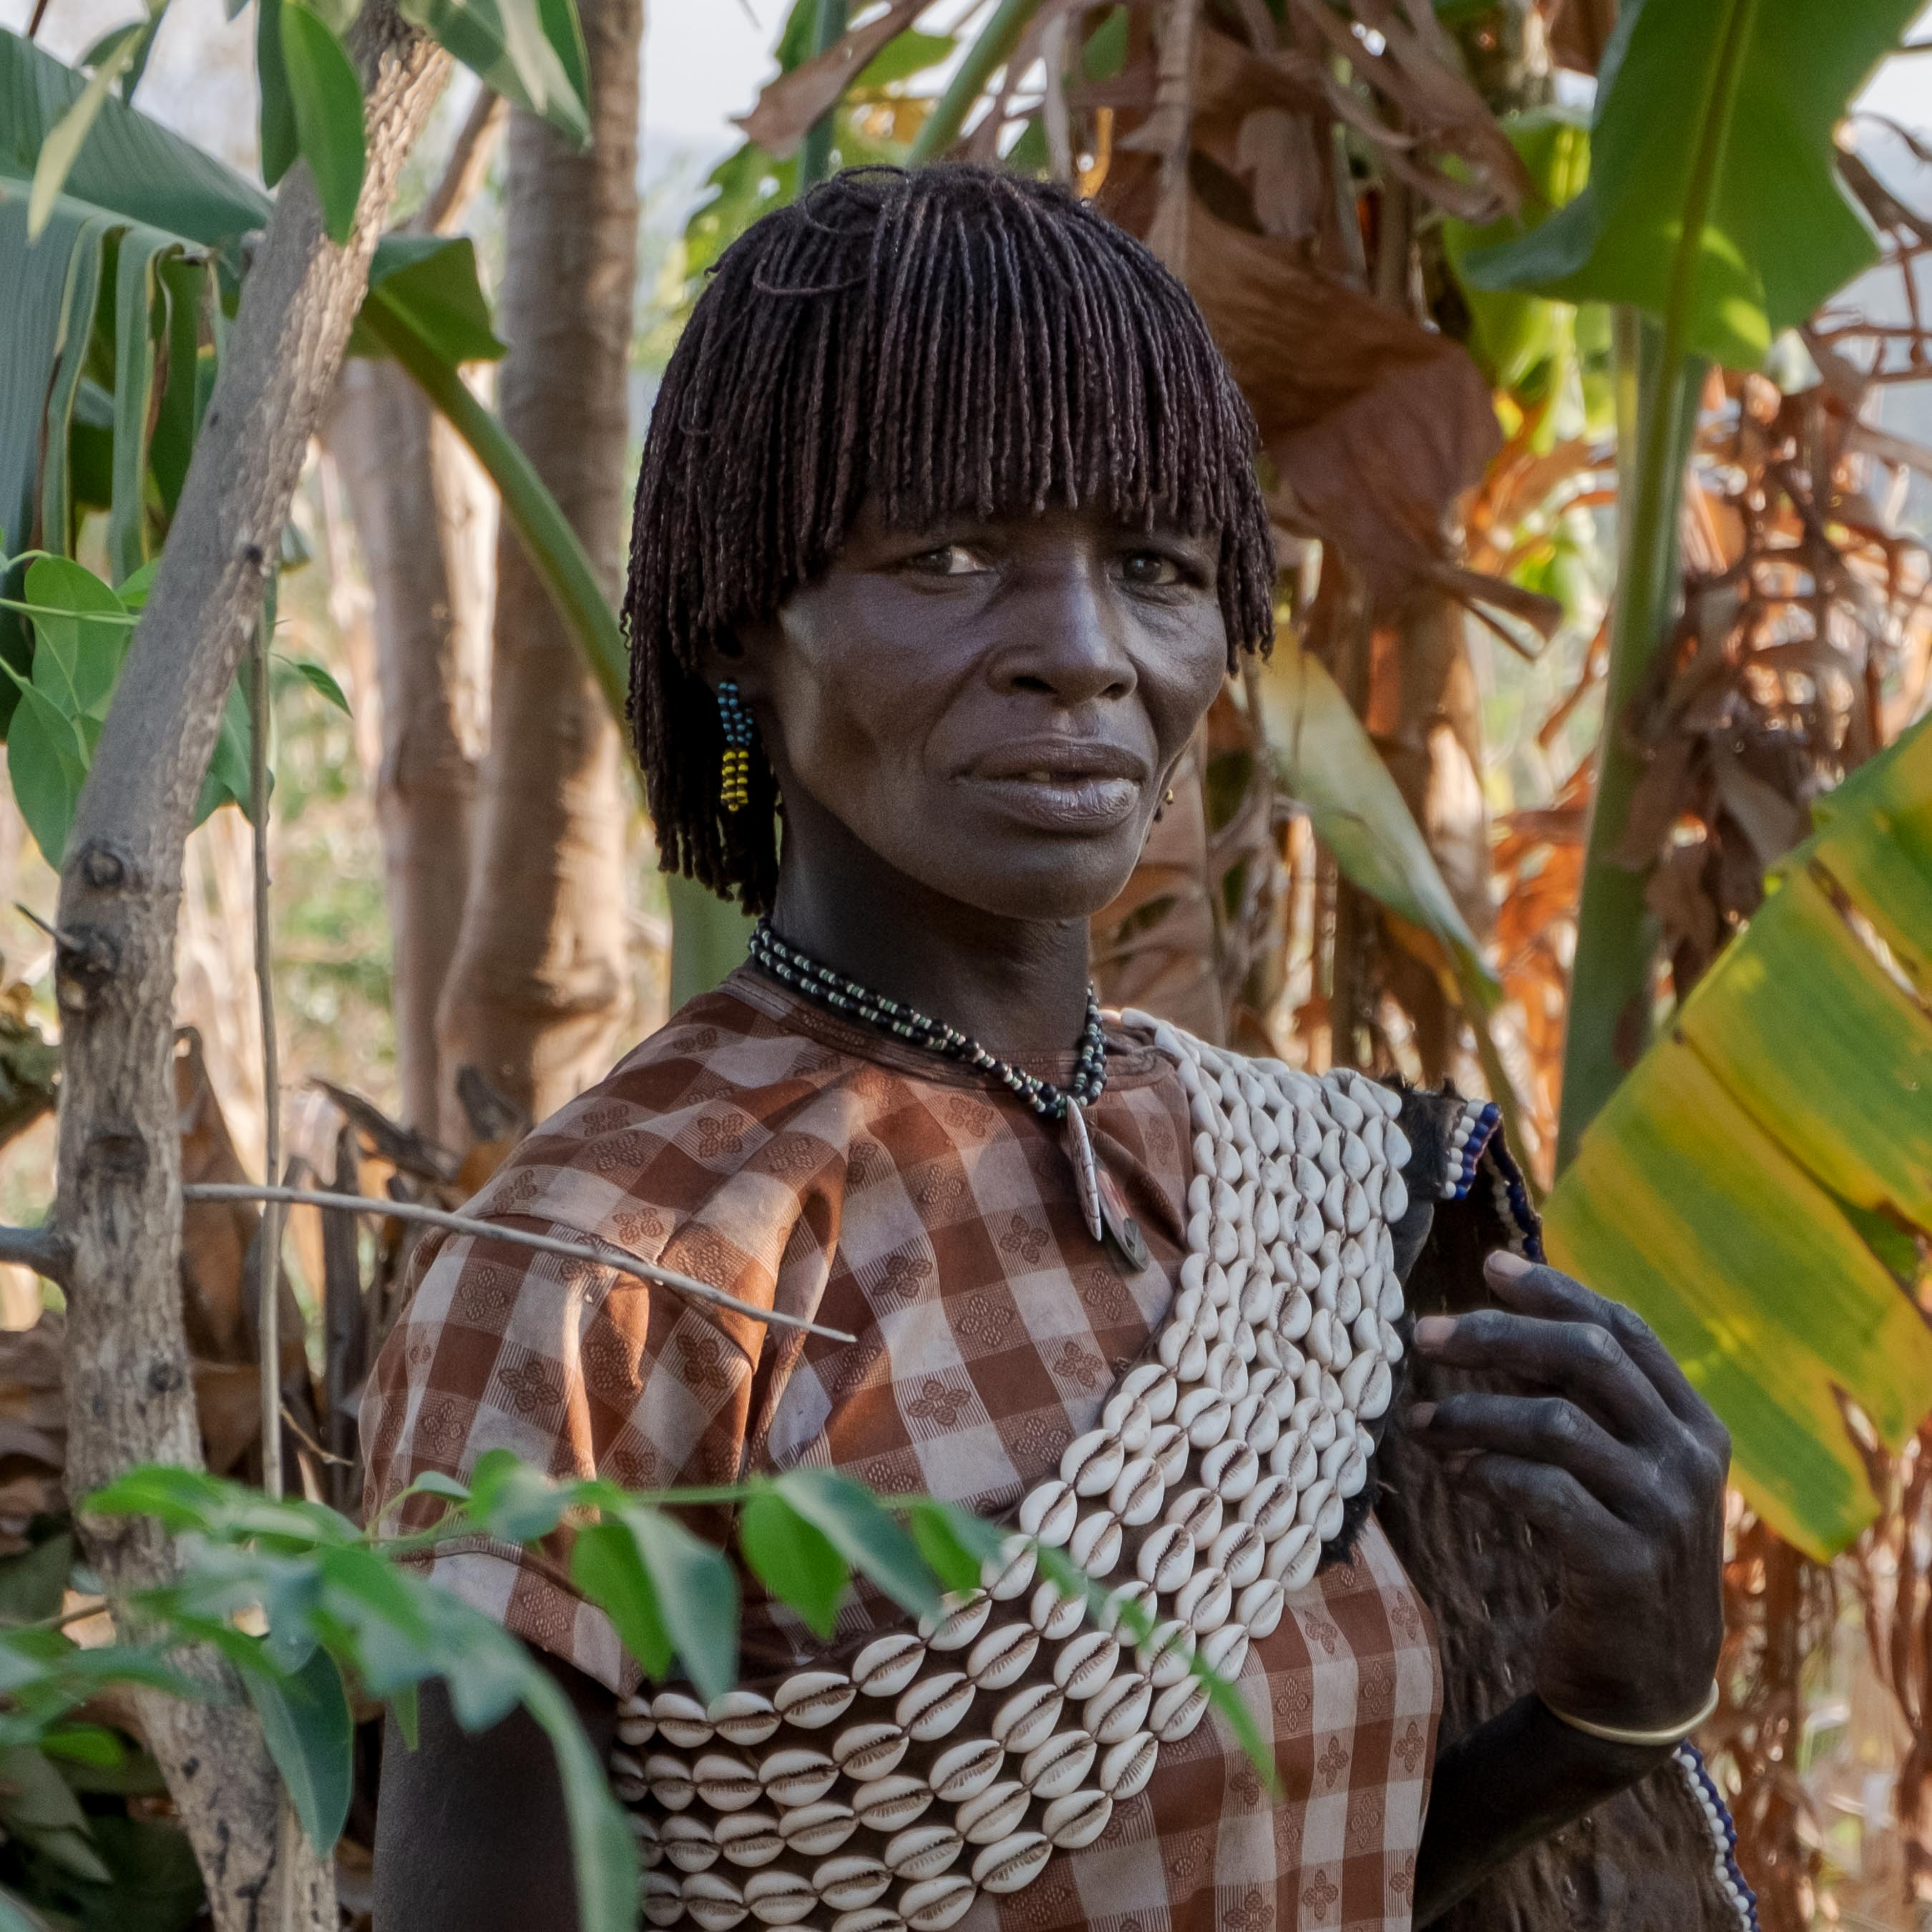 Portrait of a woman belonging to the Hammer Tribe in Omo Valley, Ethiopia.